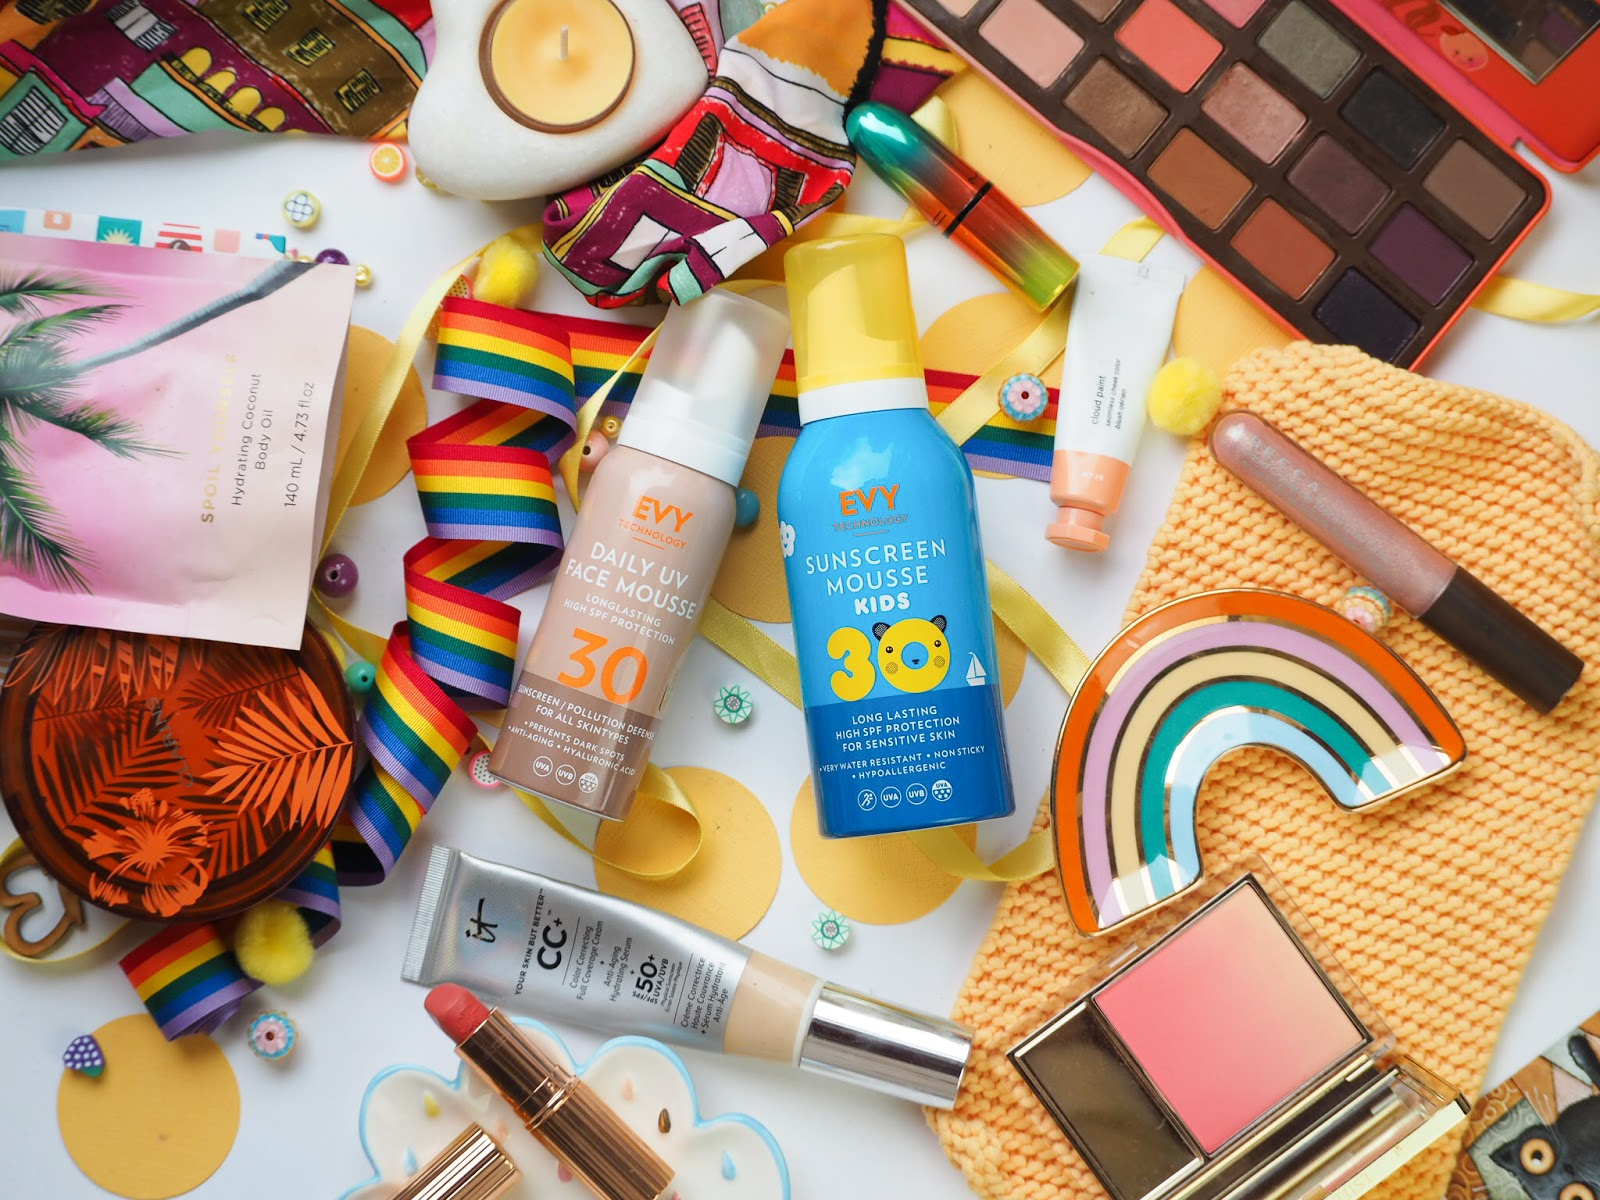 Summer Products I Look Forward To Using